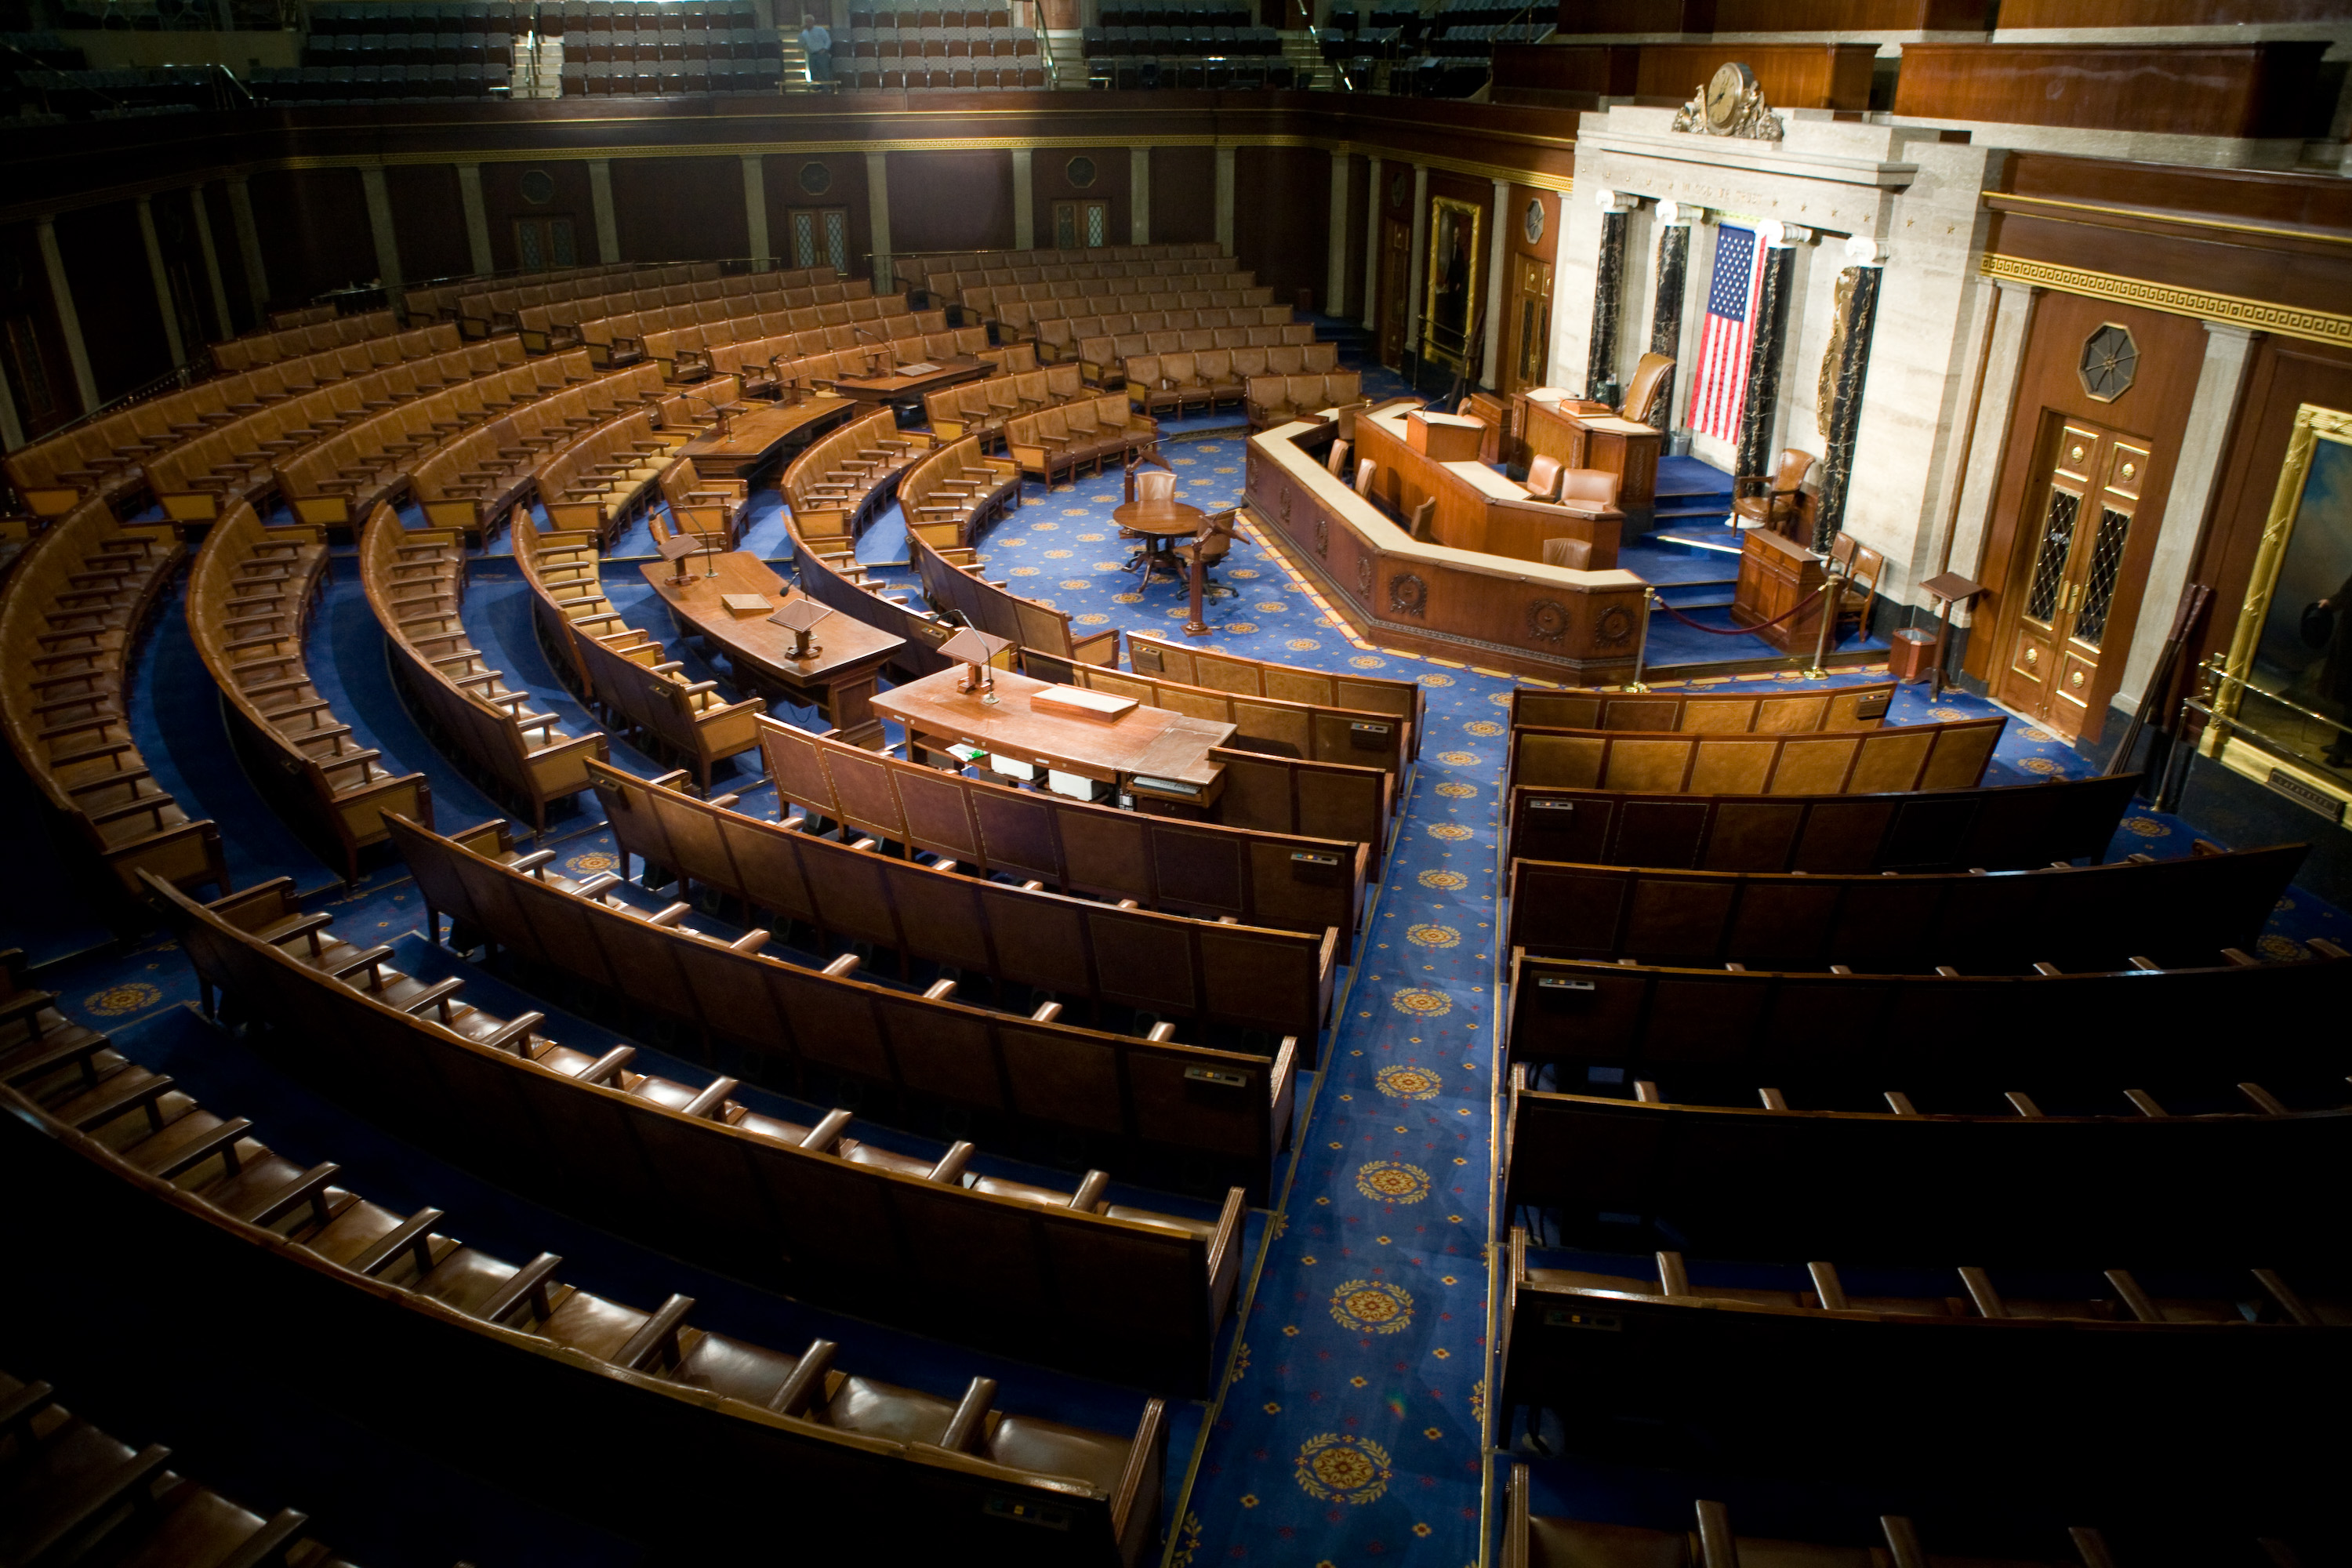 The U.S. House of Representatives chamber is seen December 8, 2008 in Washington.